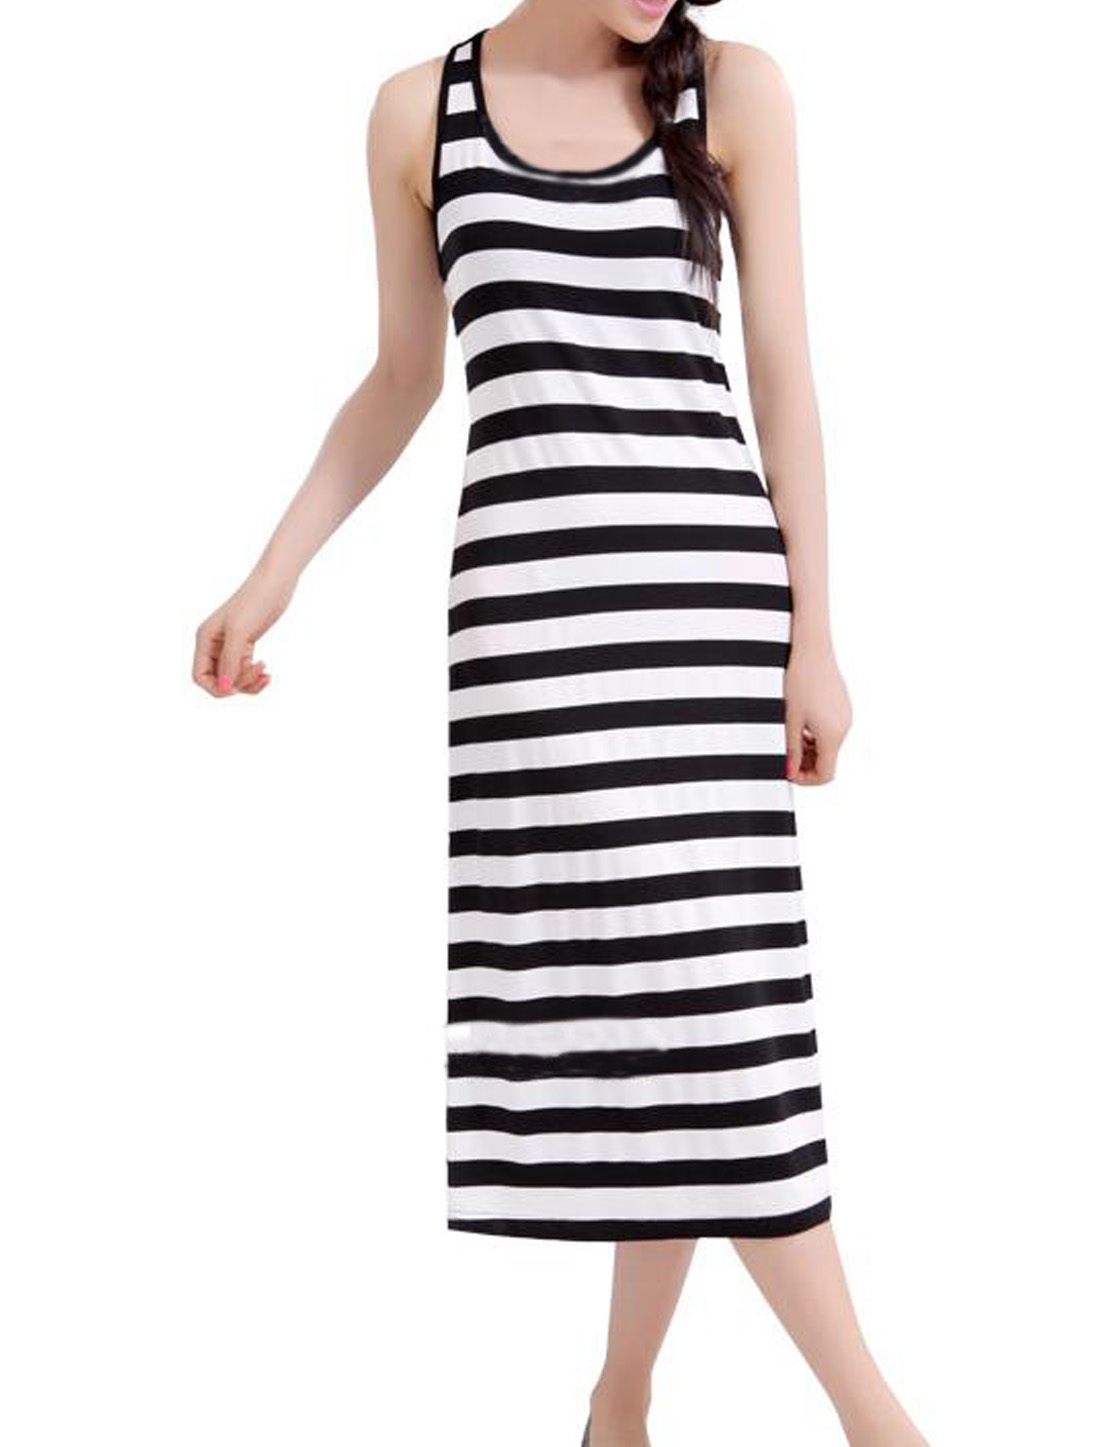 XS White Black Striped Scoop Neck Tank Dress for Lady